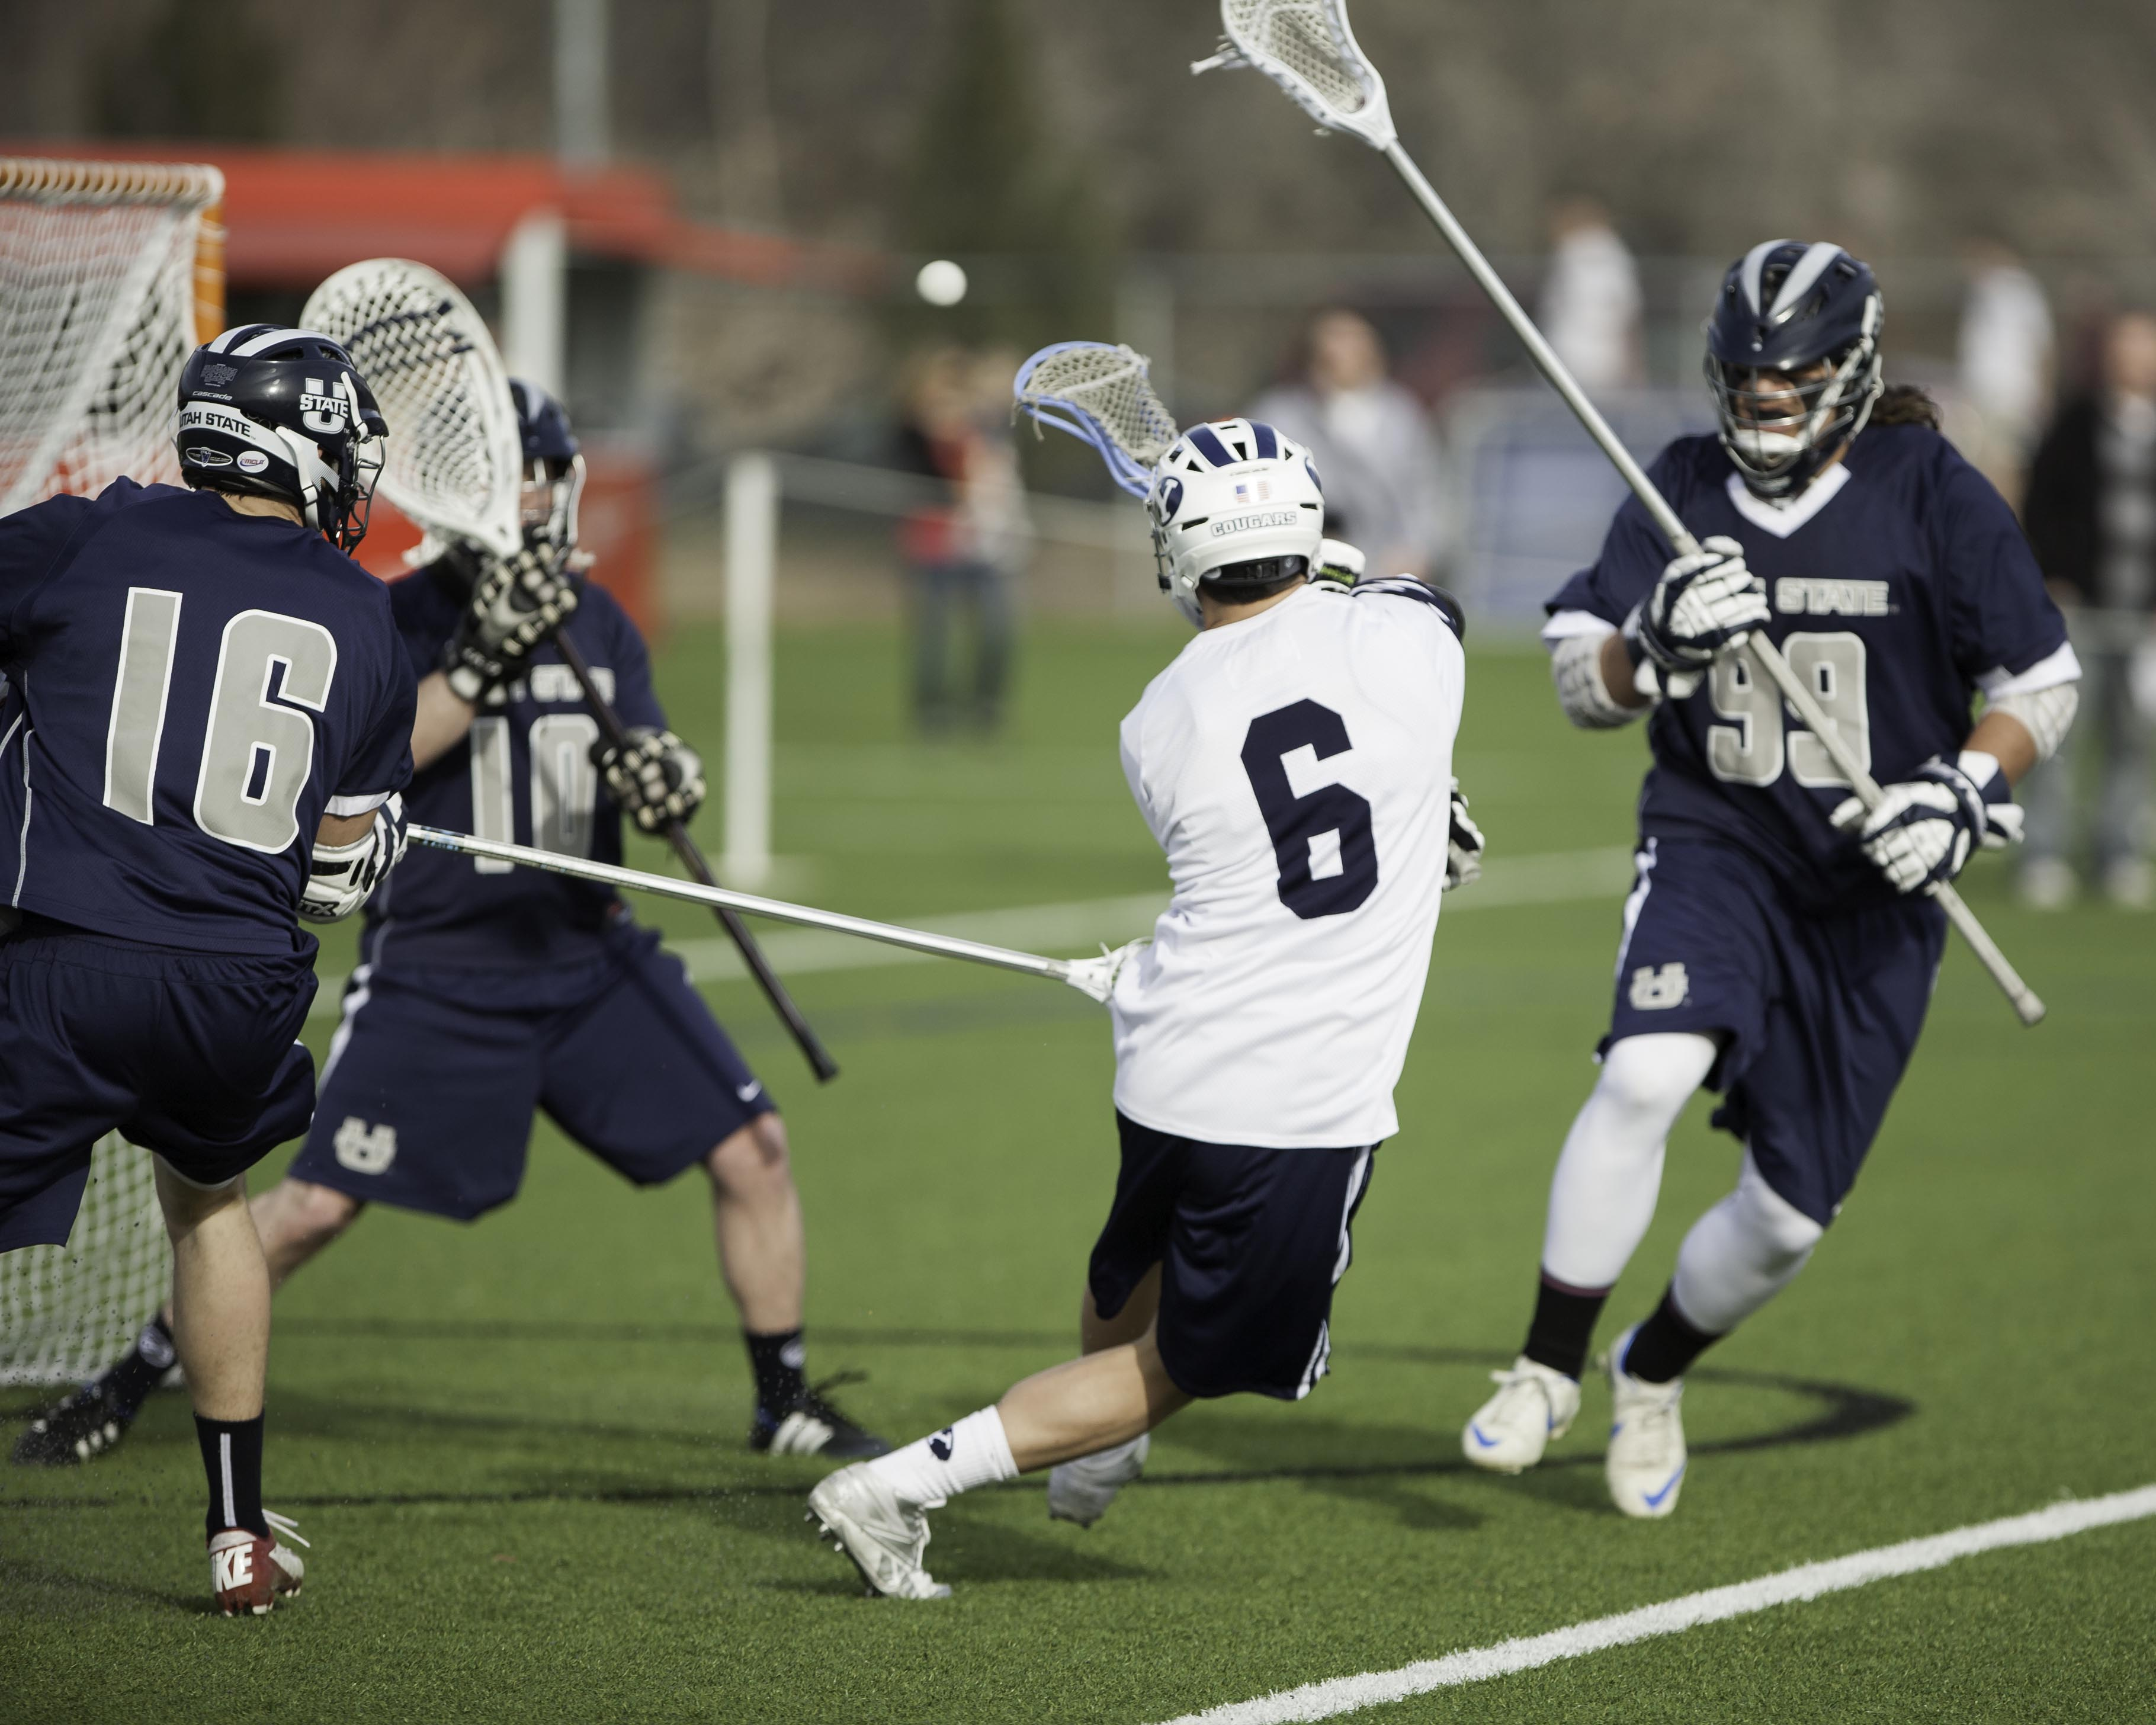 BYU's Mike Fabrizio takes a shot in Saturday's victory against Utah State. Elliott